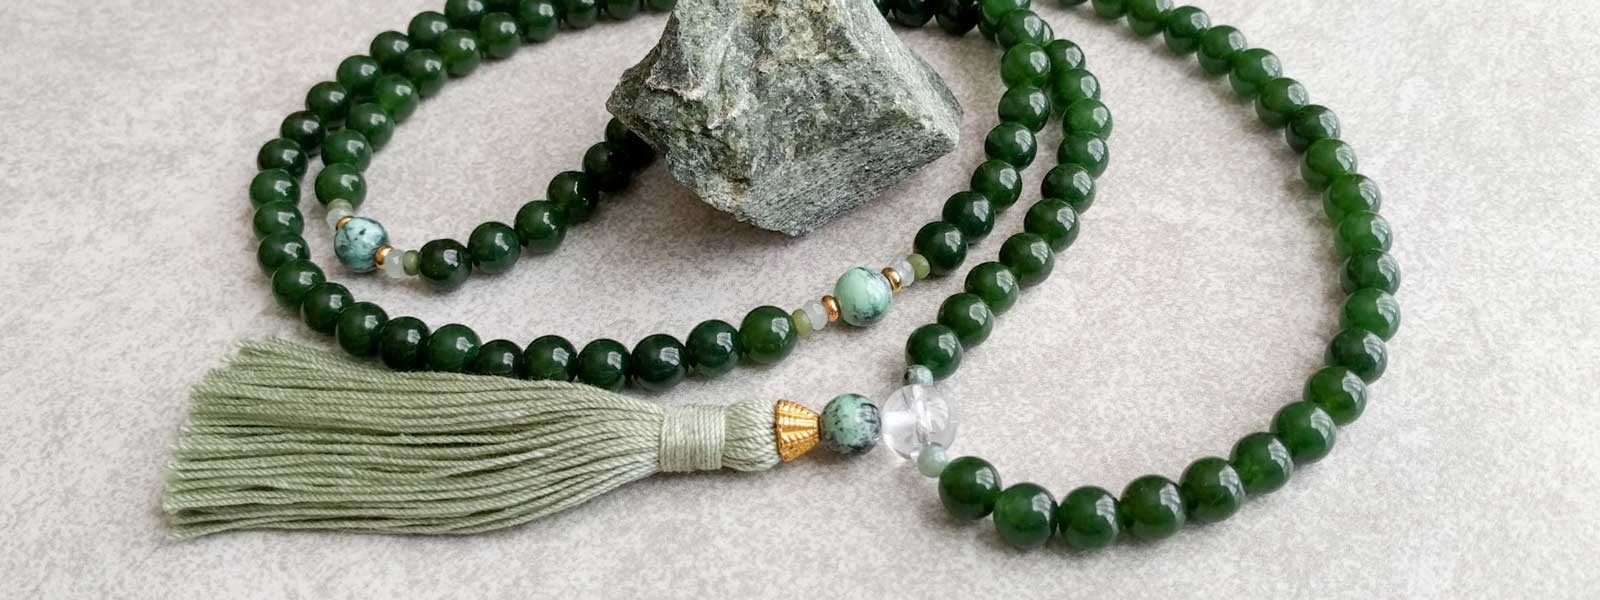 Malas Beads Meaning